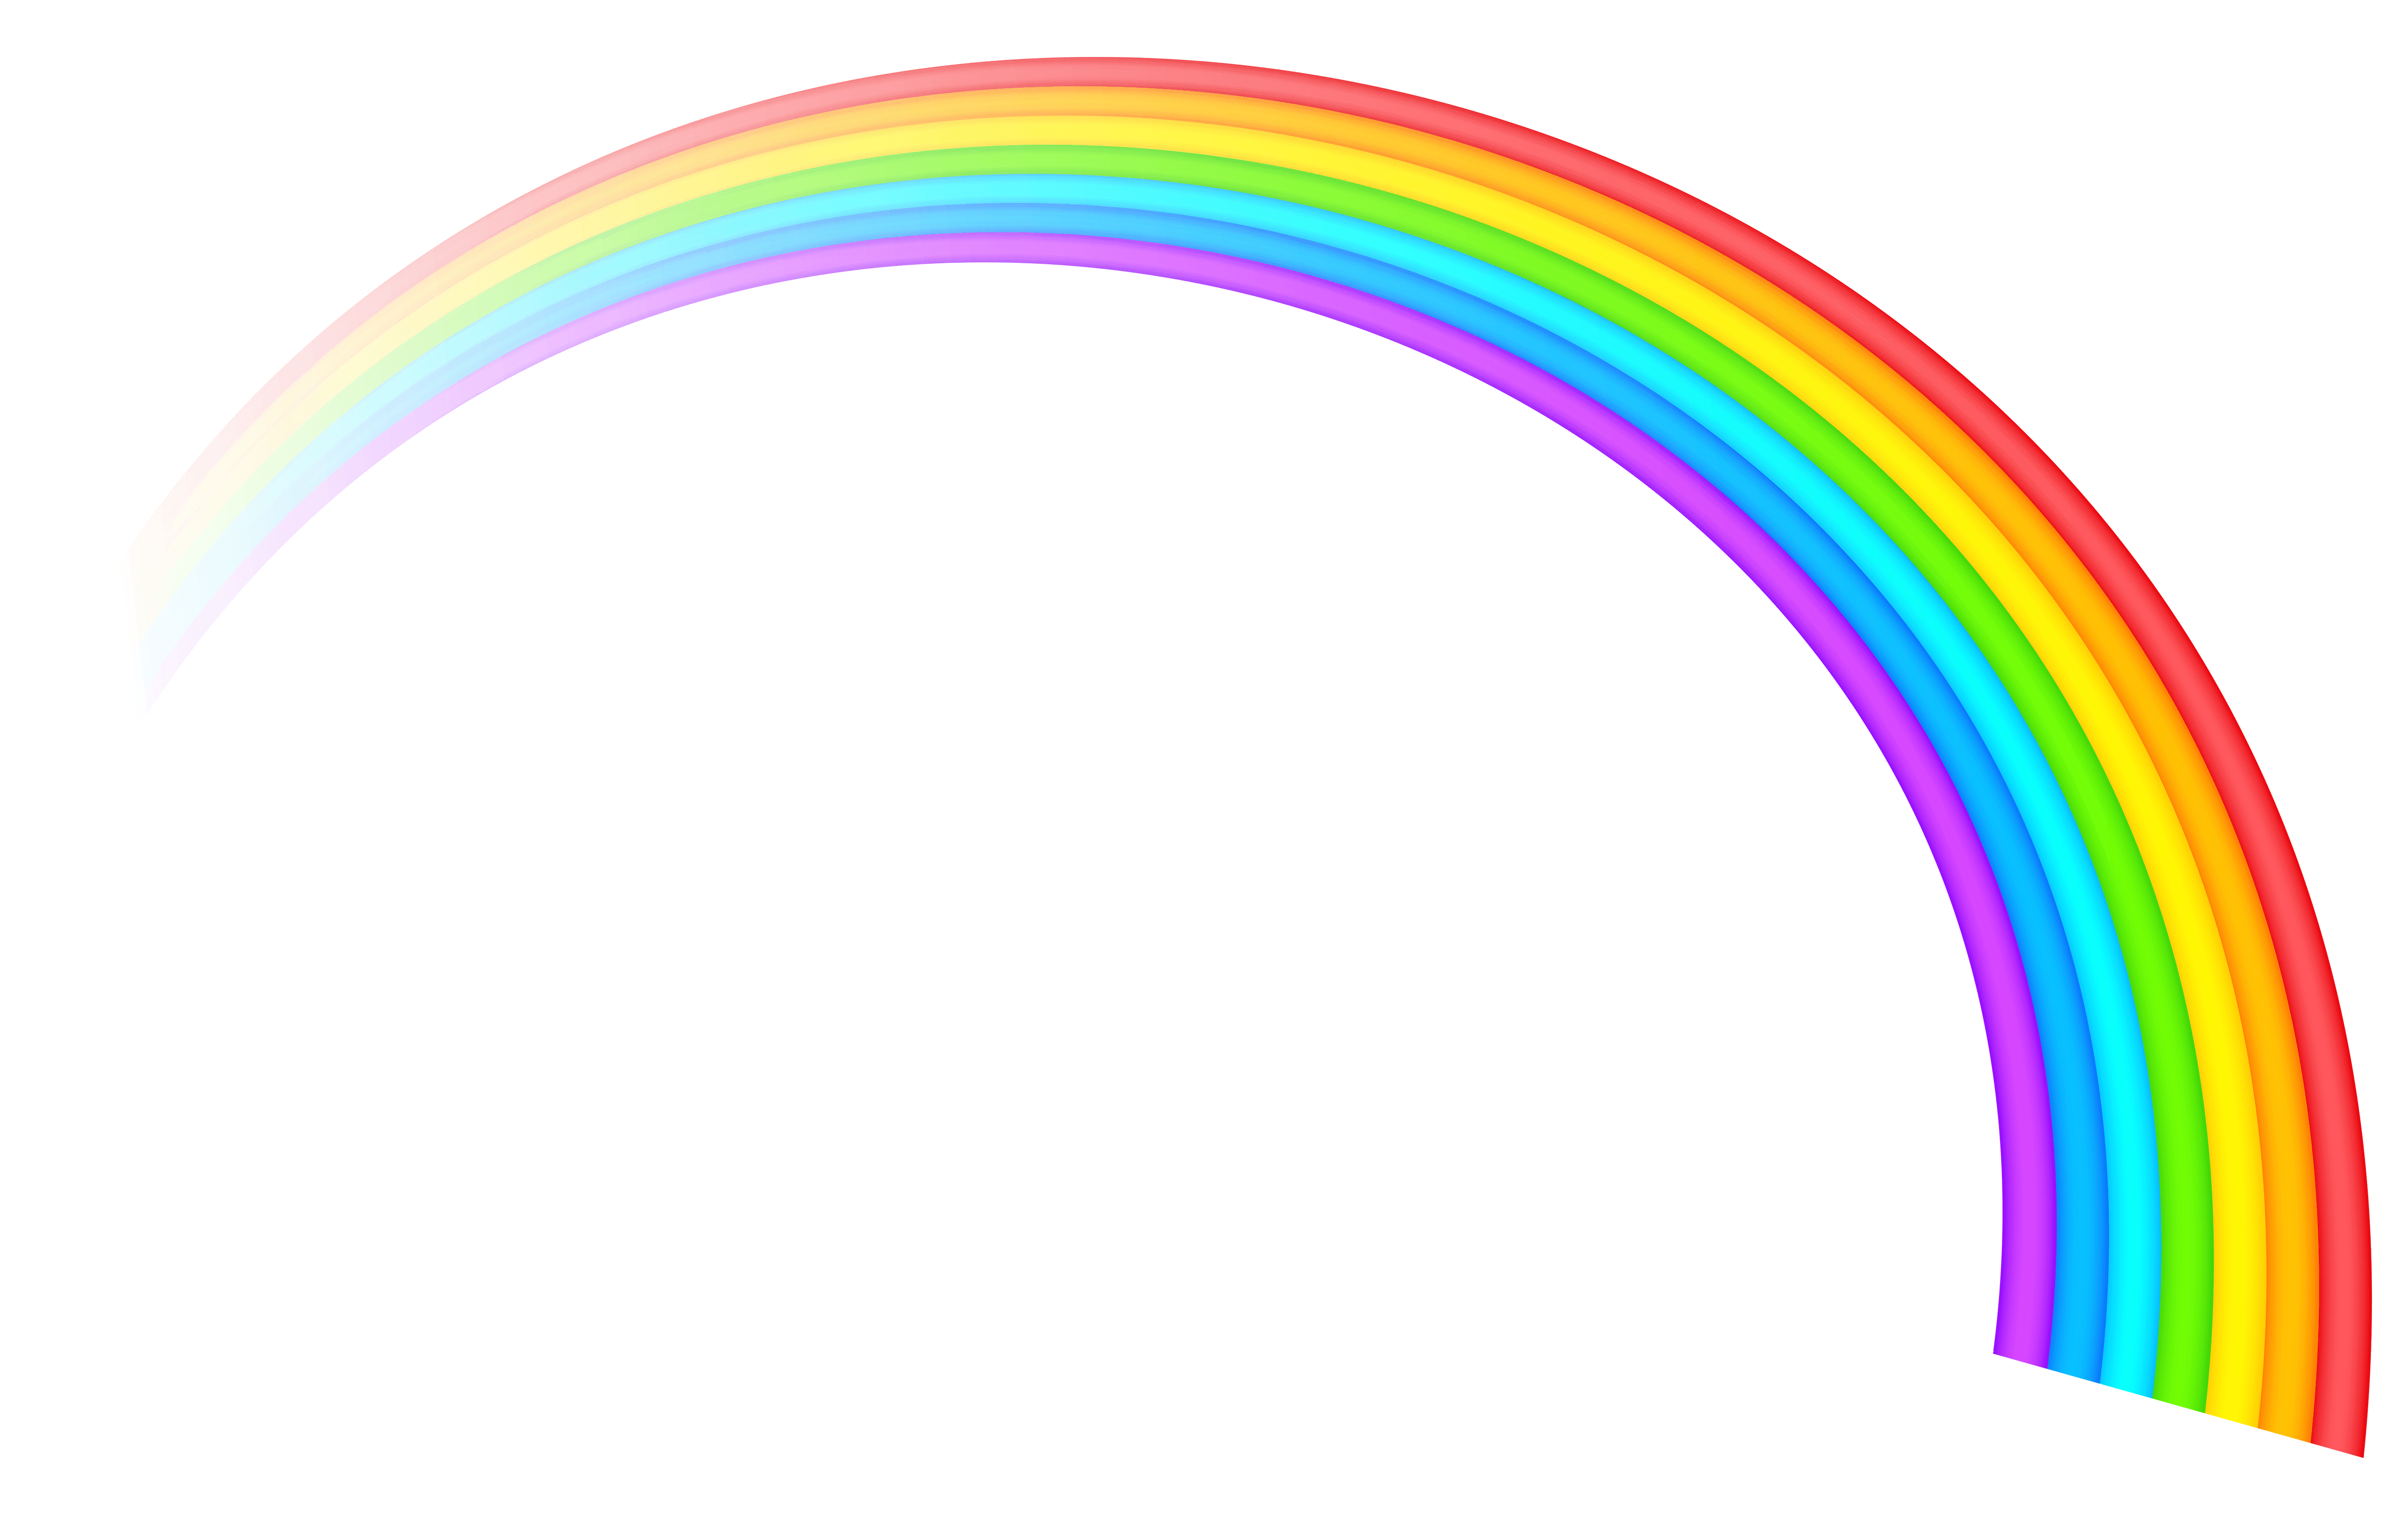 Free Transparent Rainbow Cliparts, Download Free Clip Art.